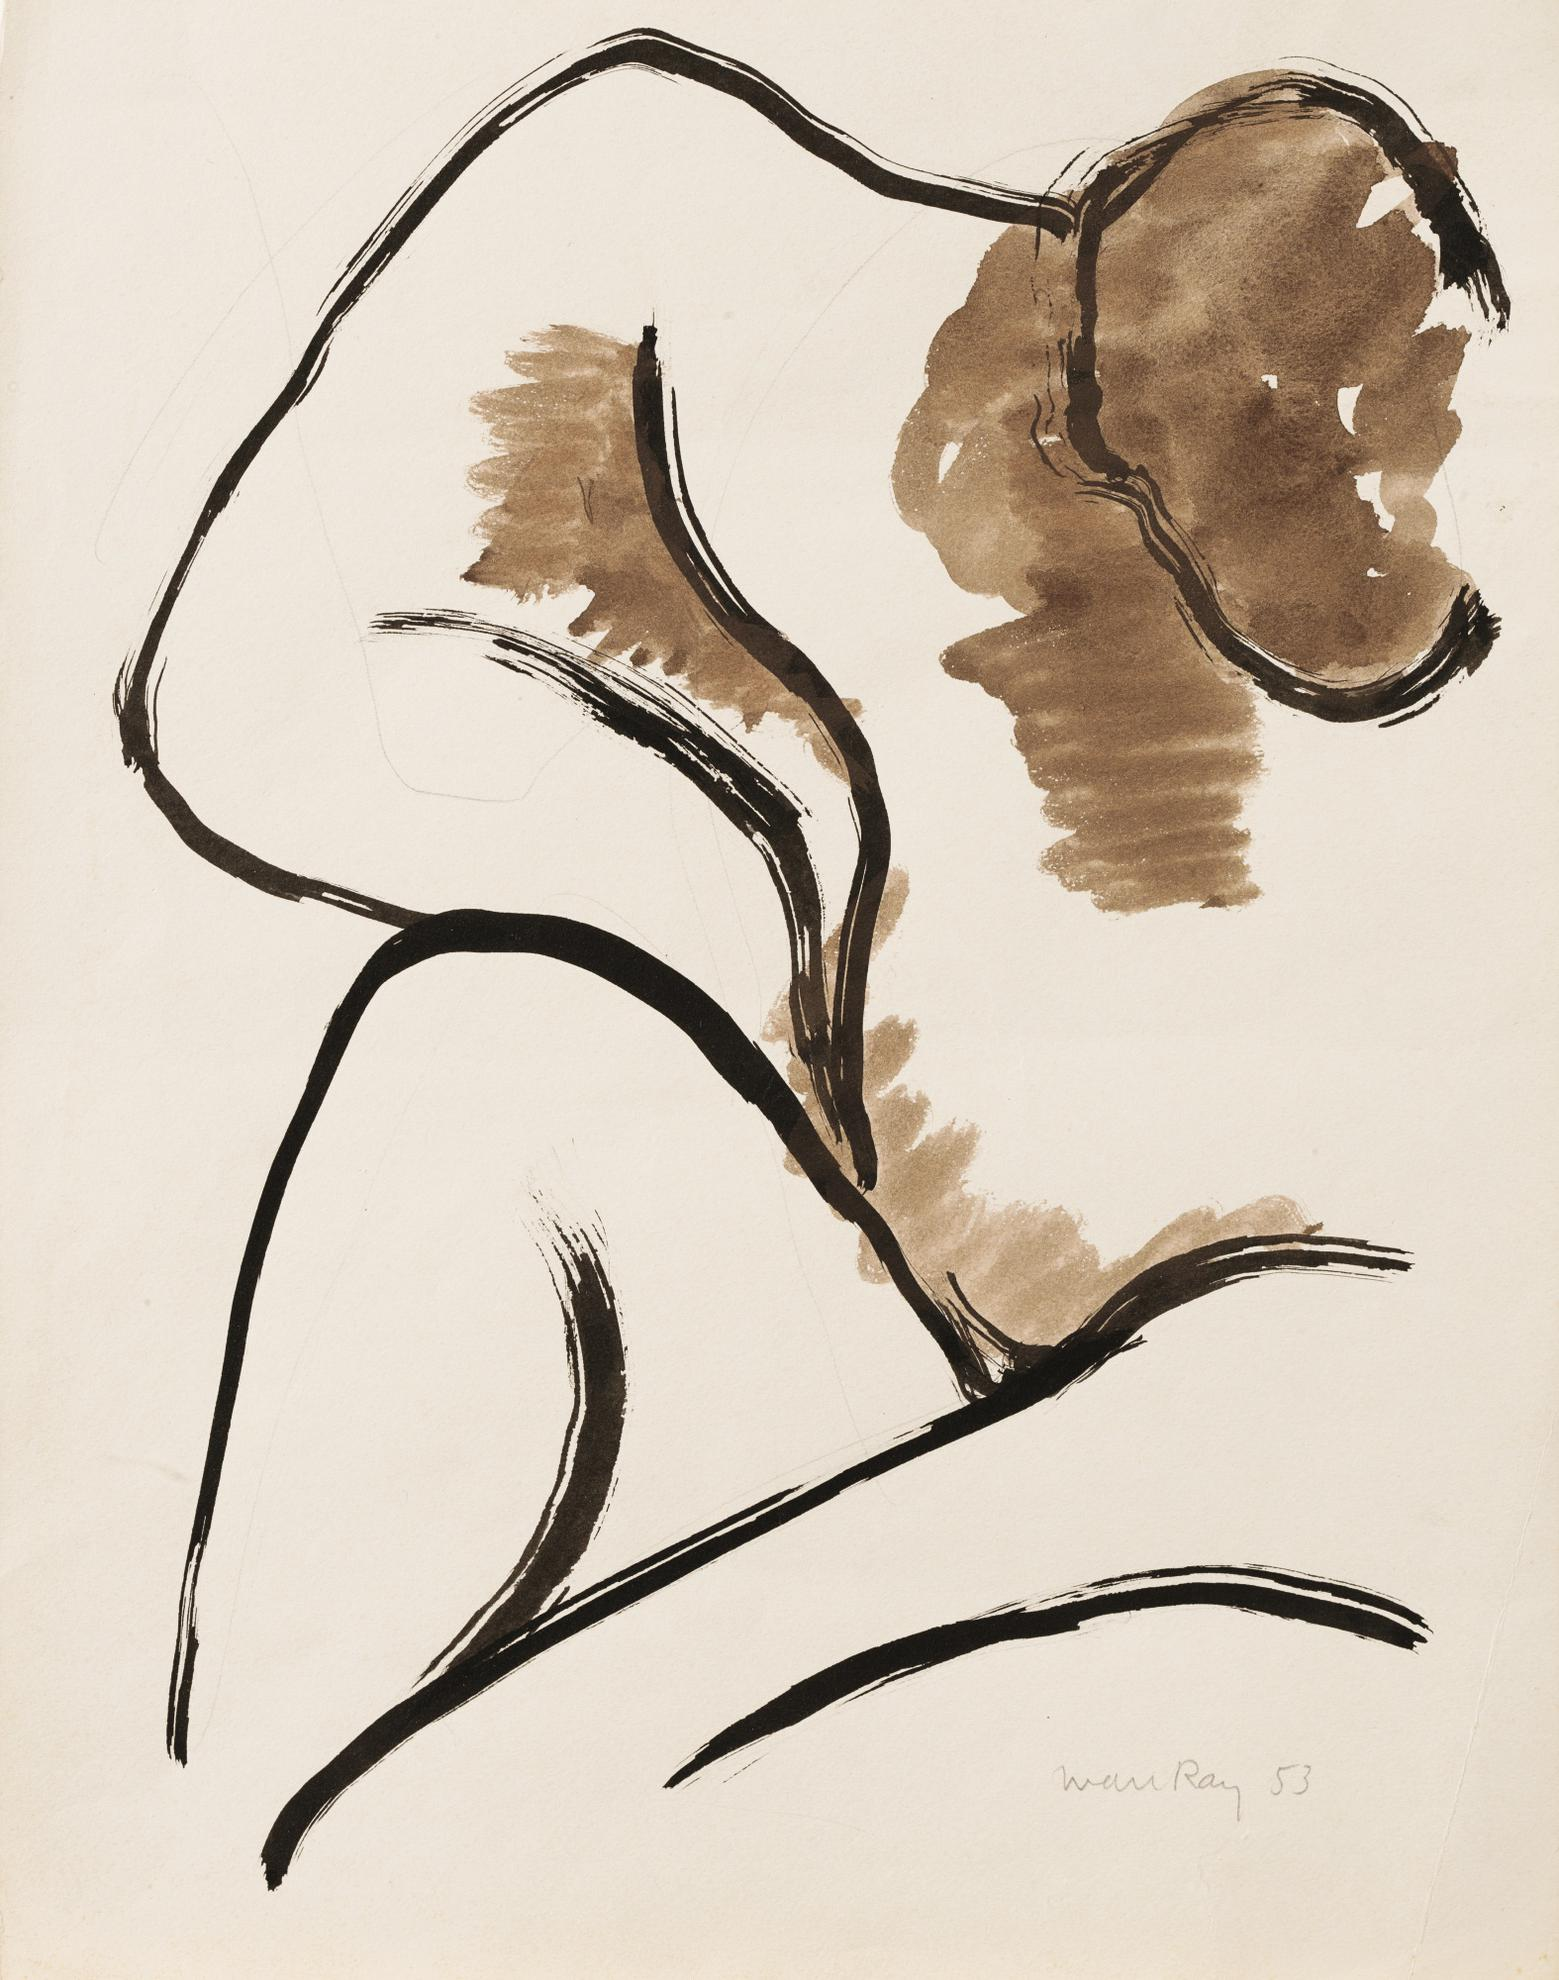 Man Ray-Seated Nude-1953